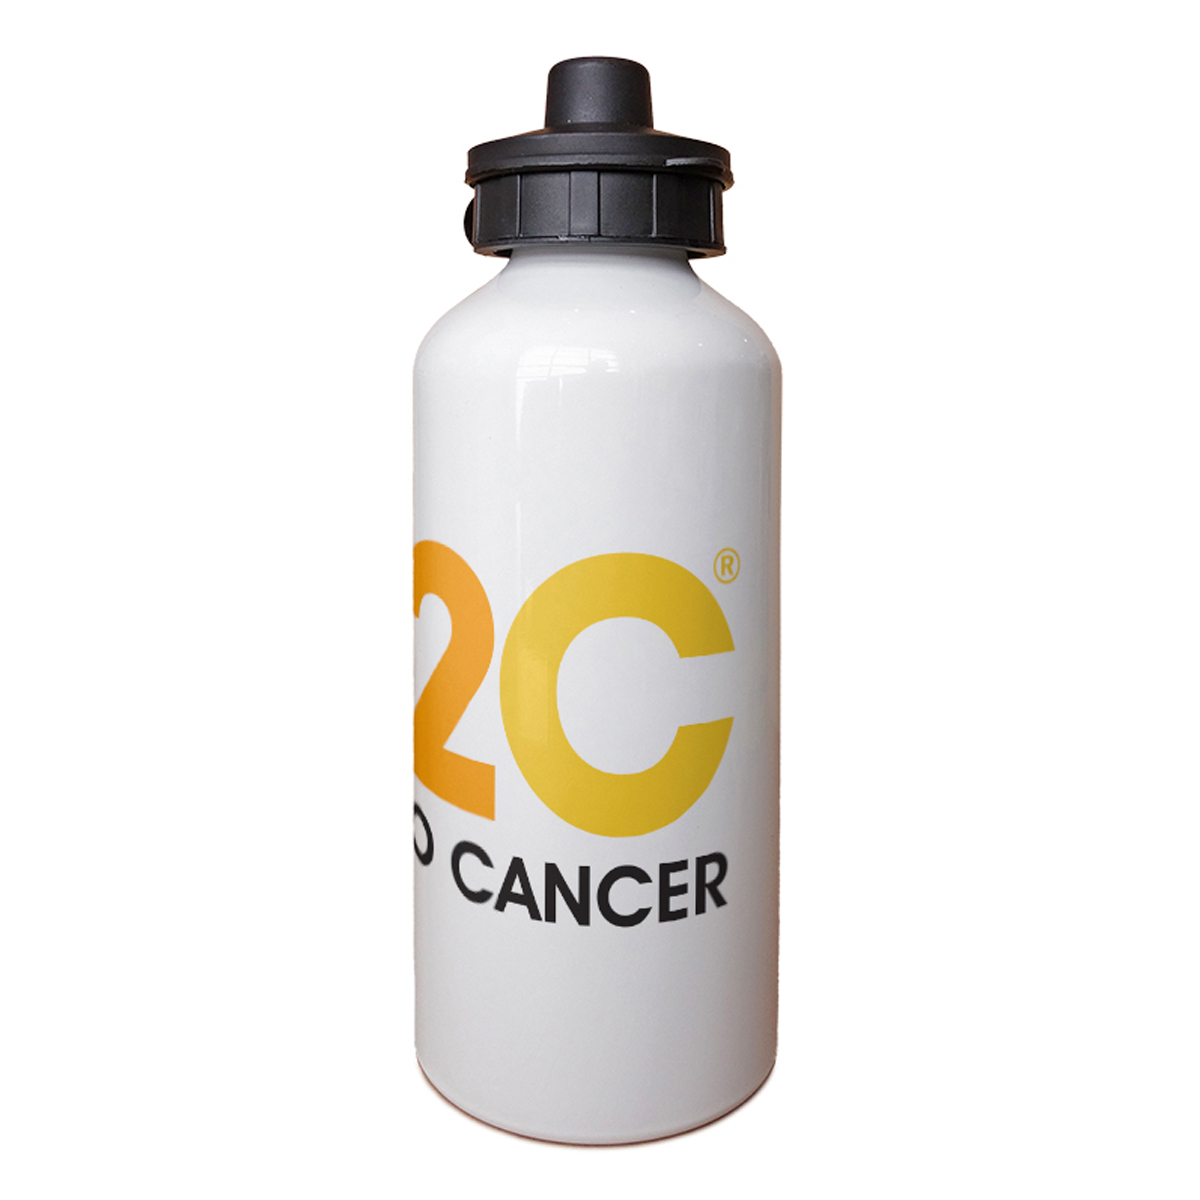 SU2C Short Logo Aluminum Water Bottle